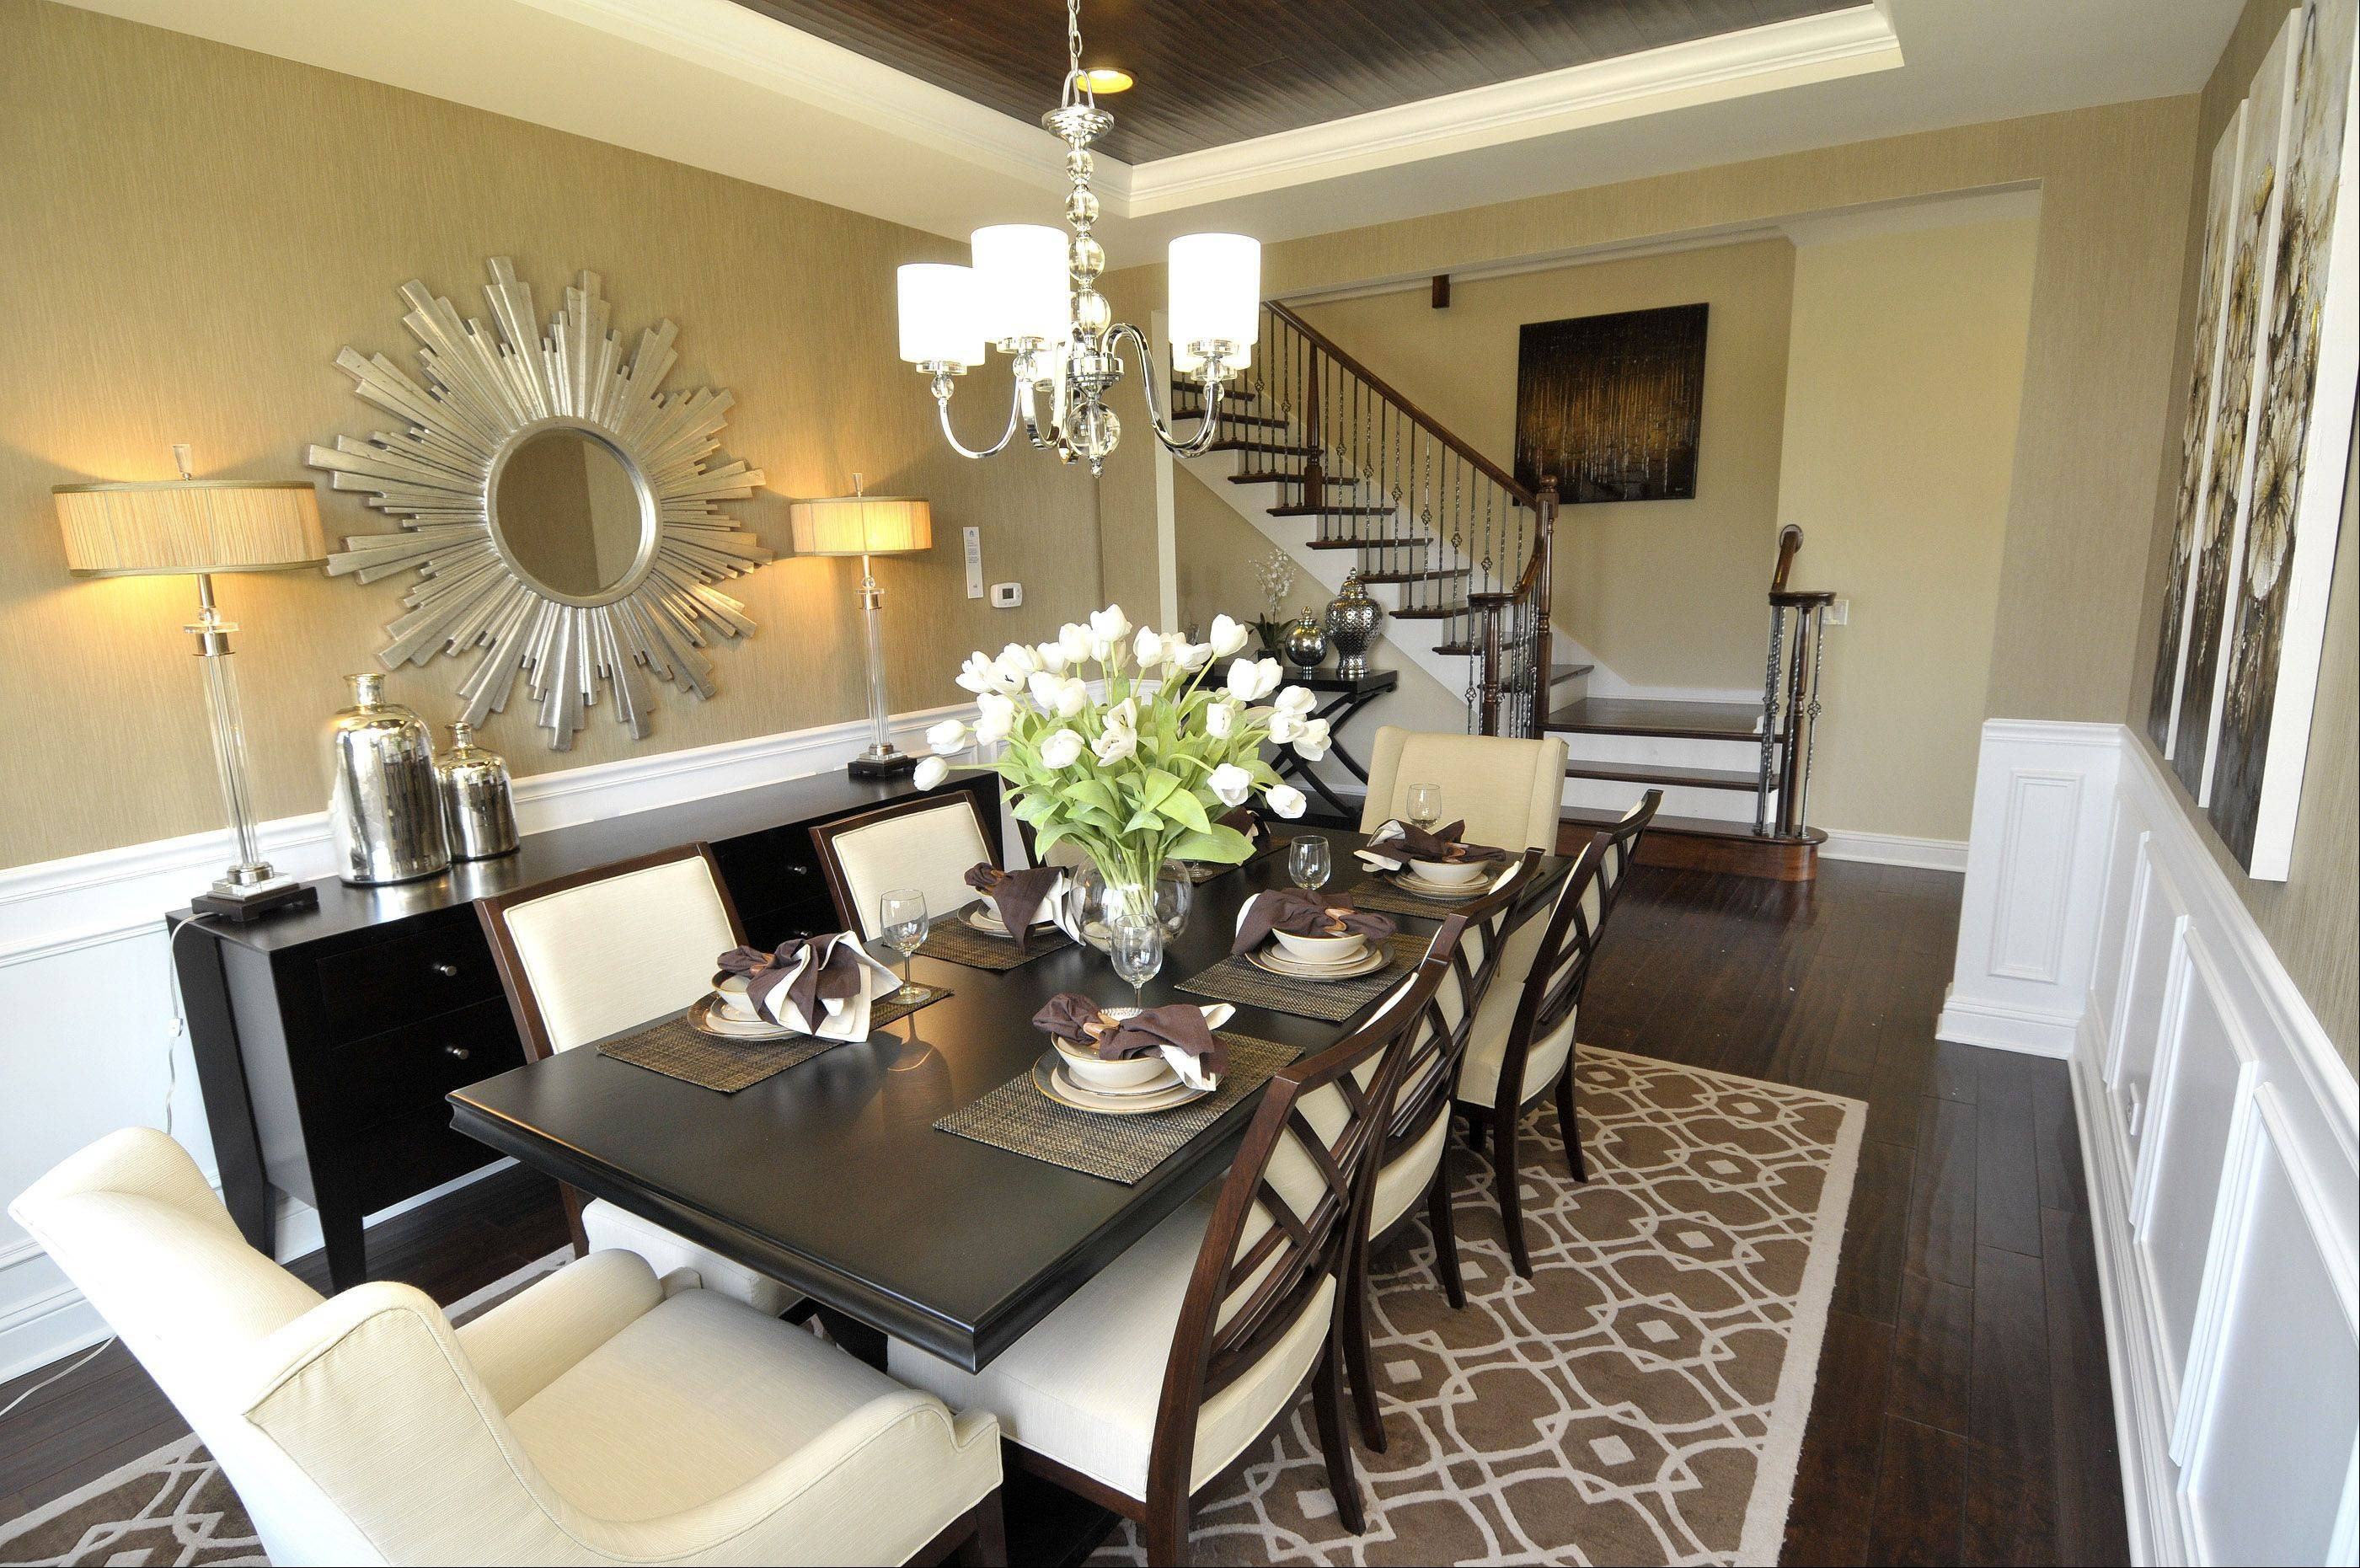 A Neutral Palette Of White, Creams And Browns With Silver Accents Creates A  Calm Ambience